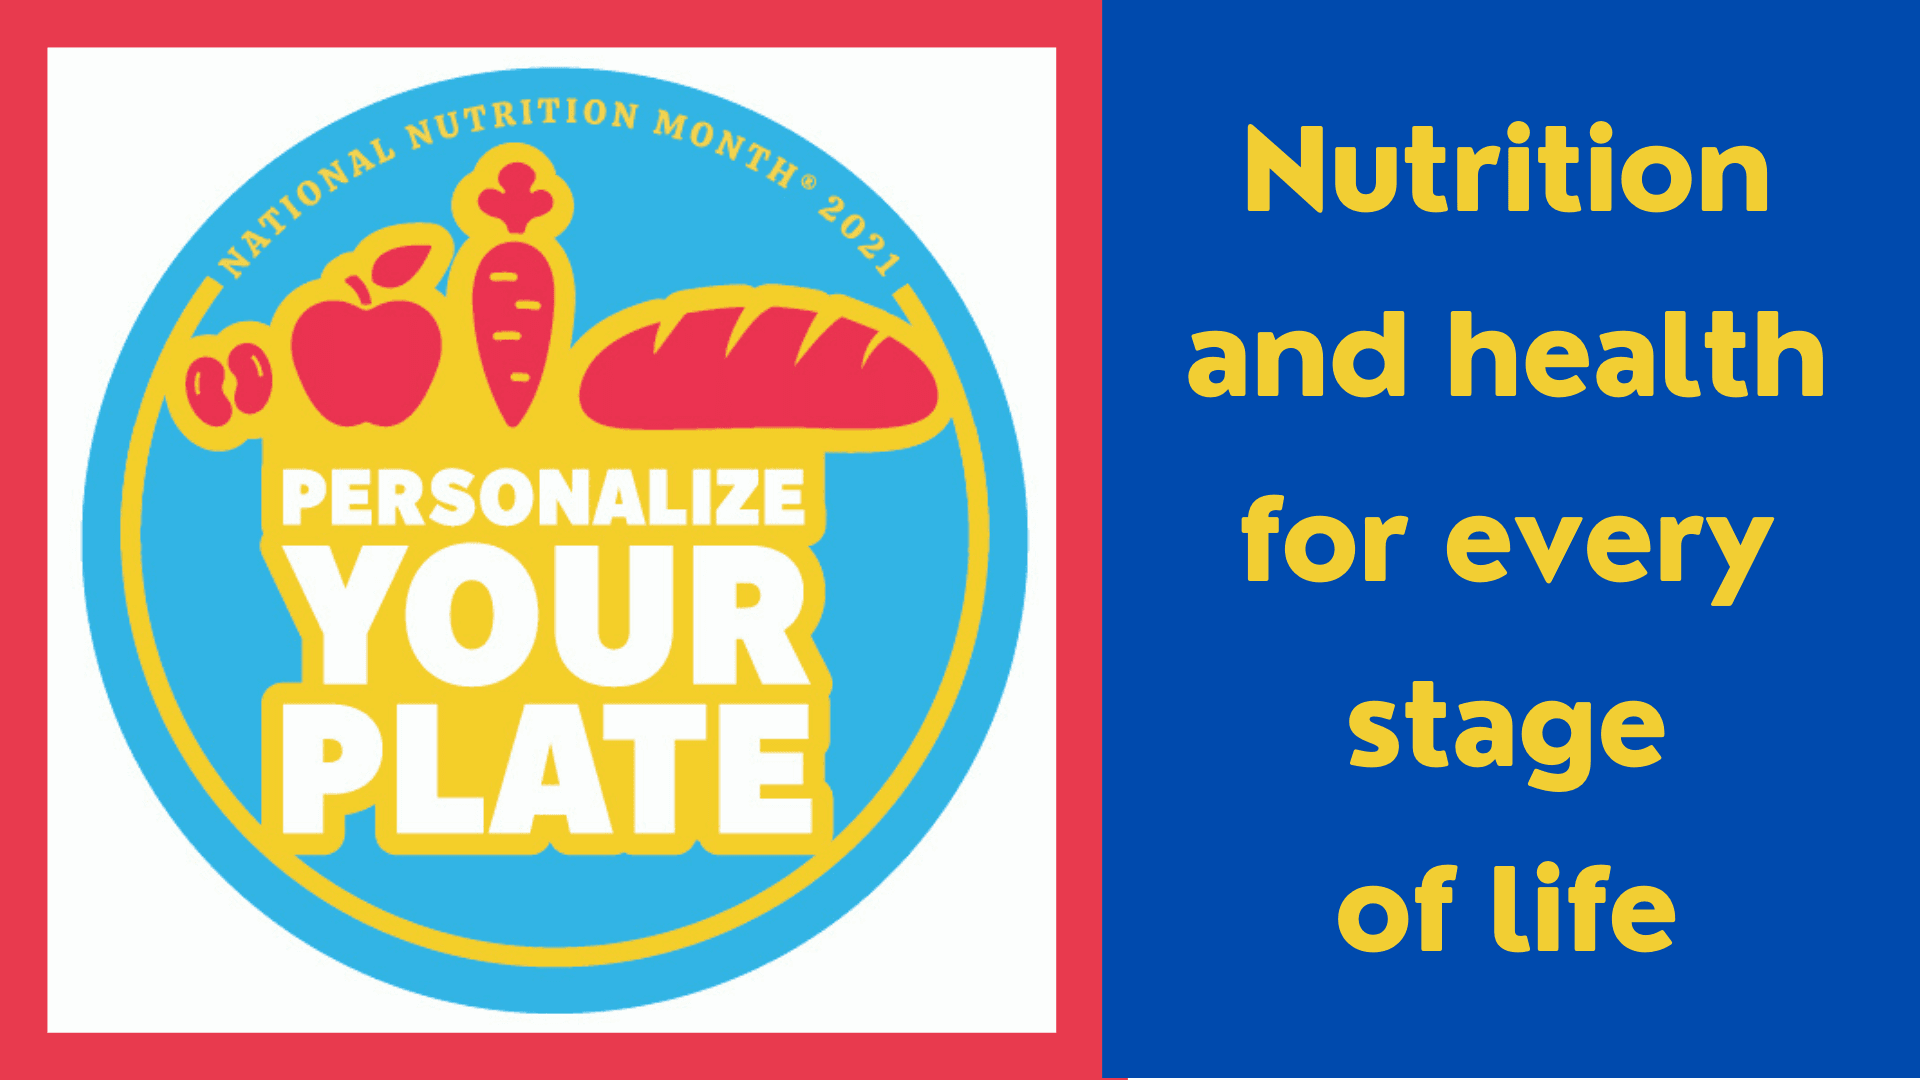 National Nutrition Month 2021